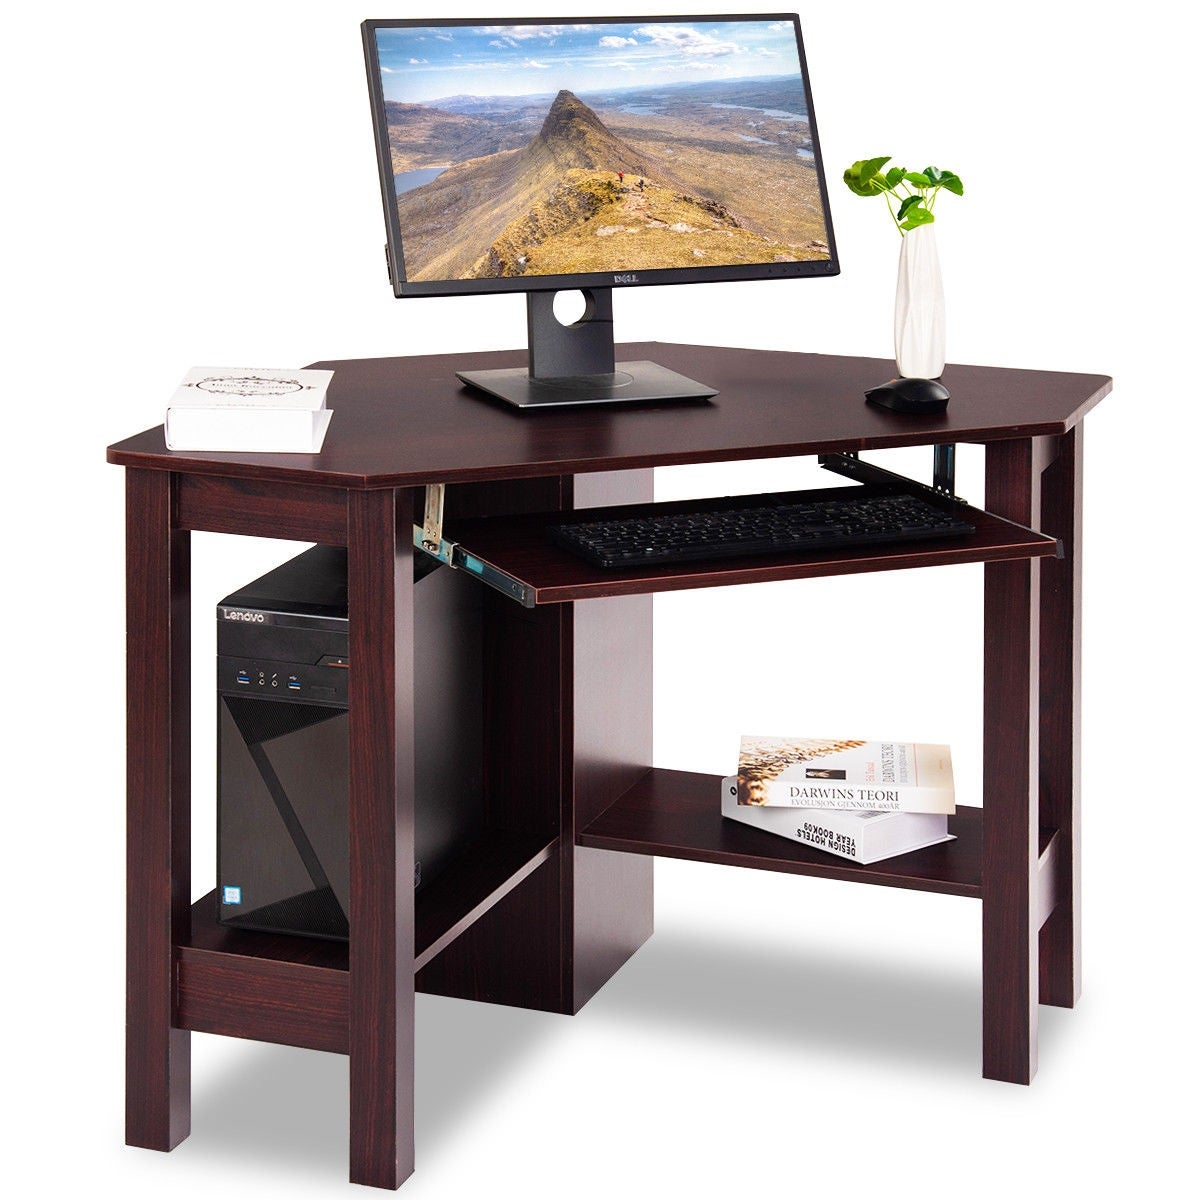 Costway Wooden Corner Desk With Drawer Computer PC Table Study Office